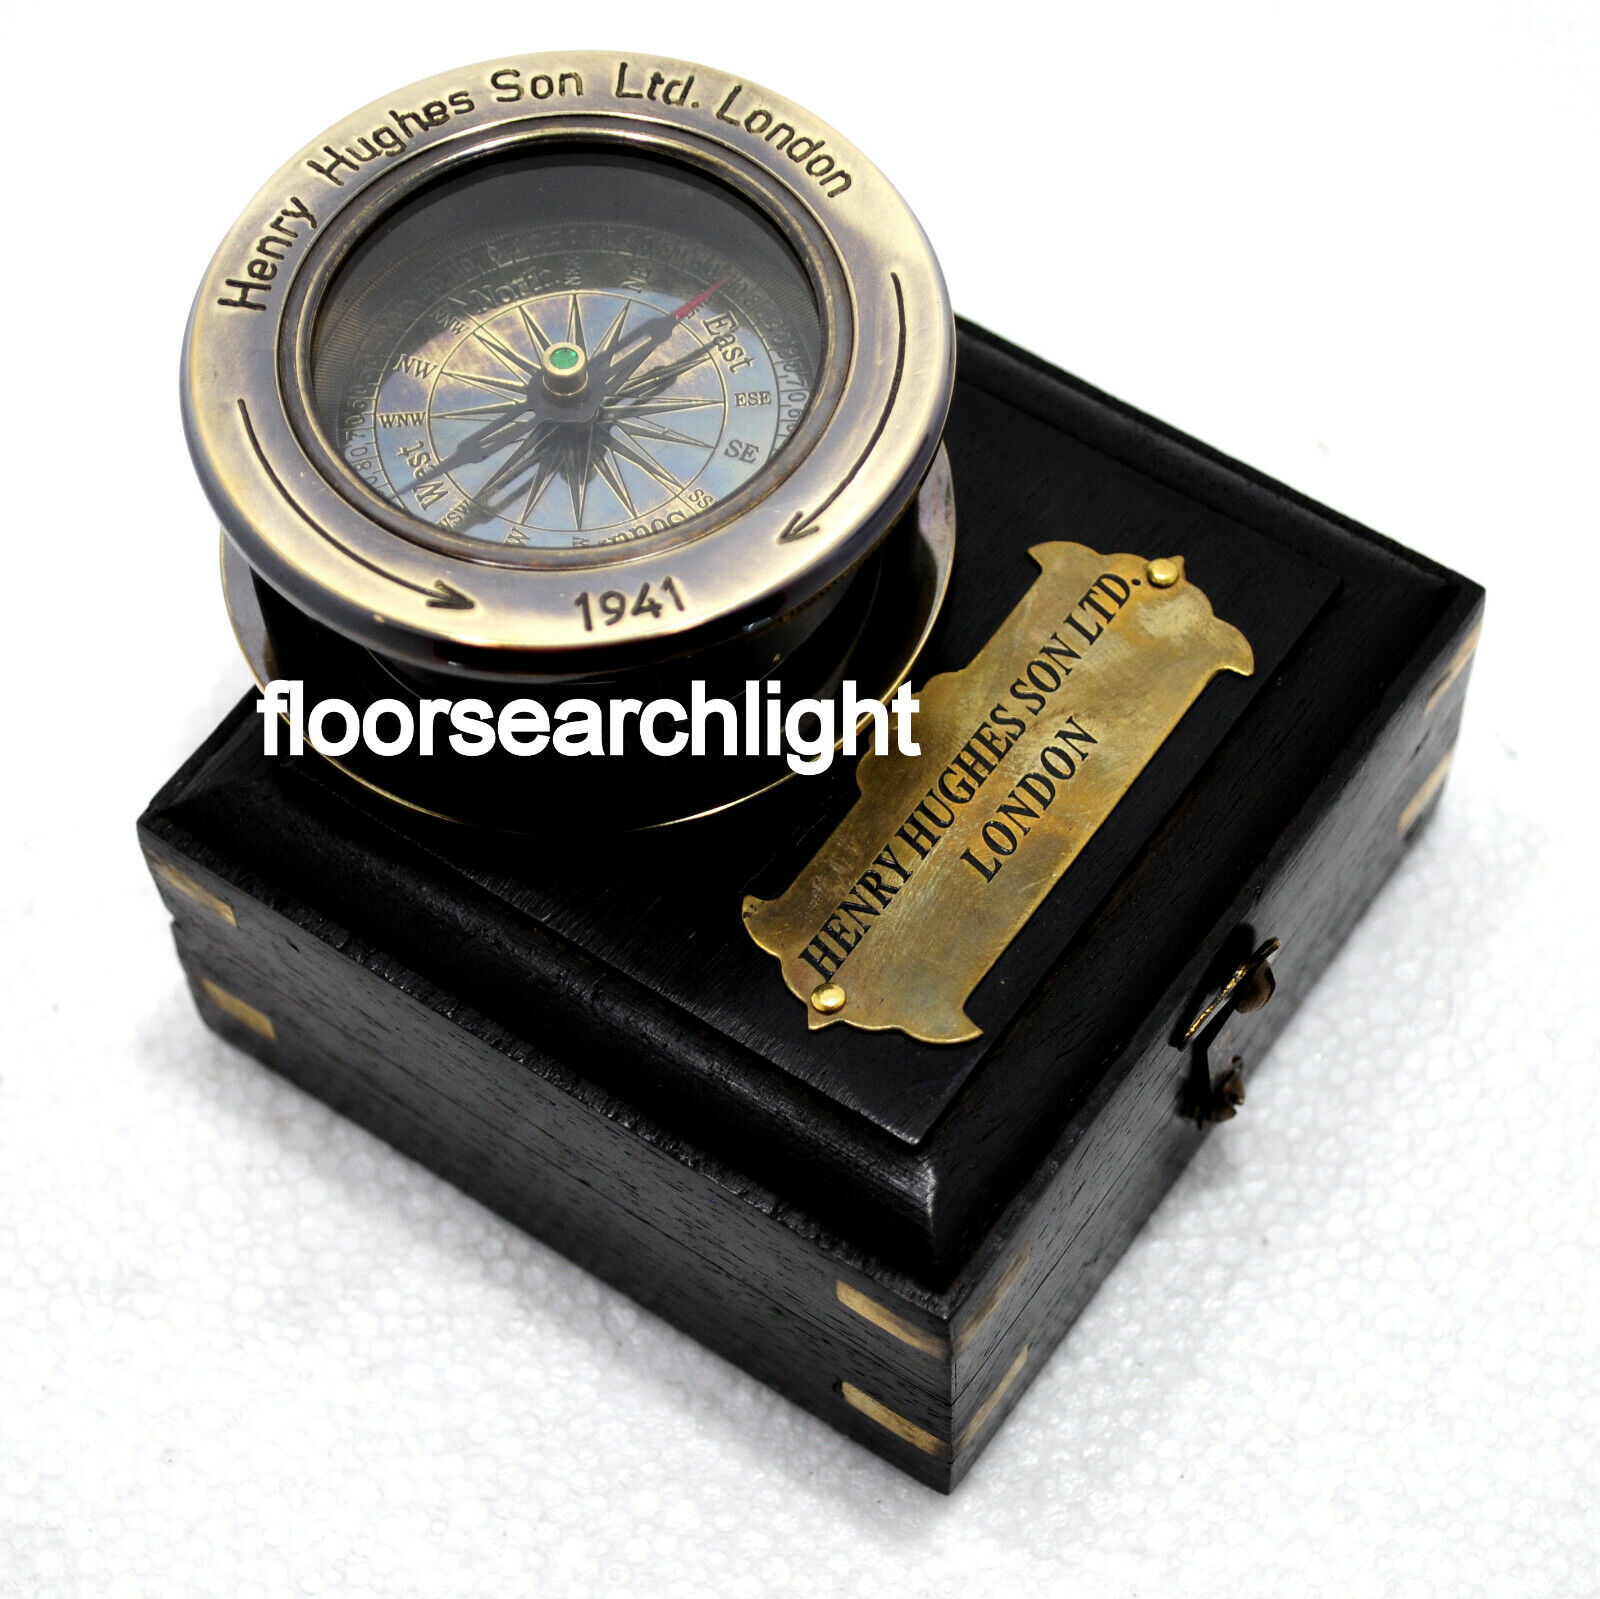 1941 HENRY HUGHES SON LONDON Antique Marine Compass With Black Wooden Box Gift